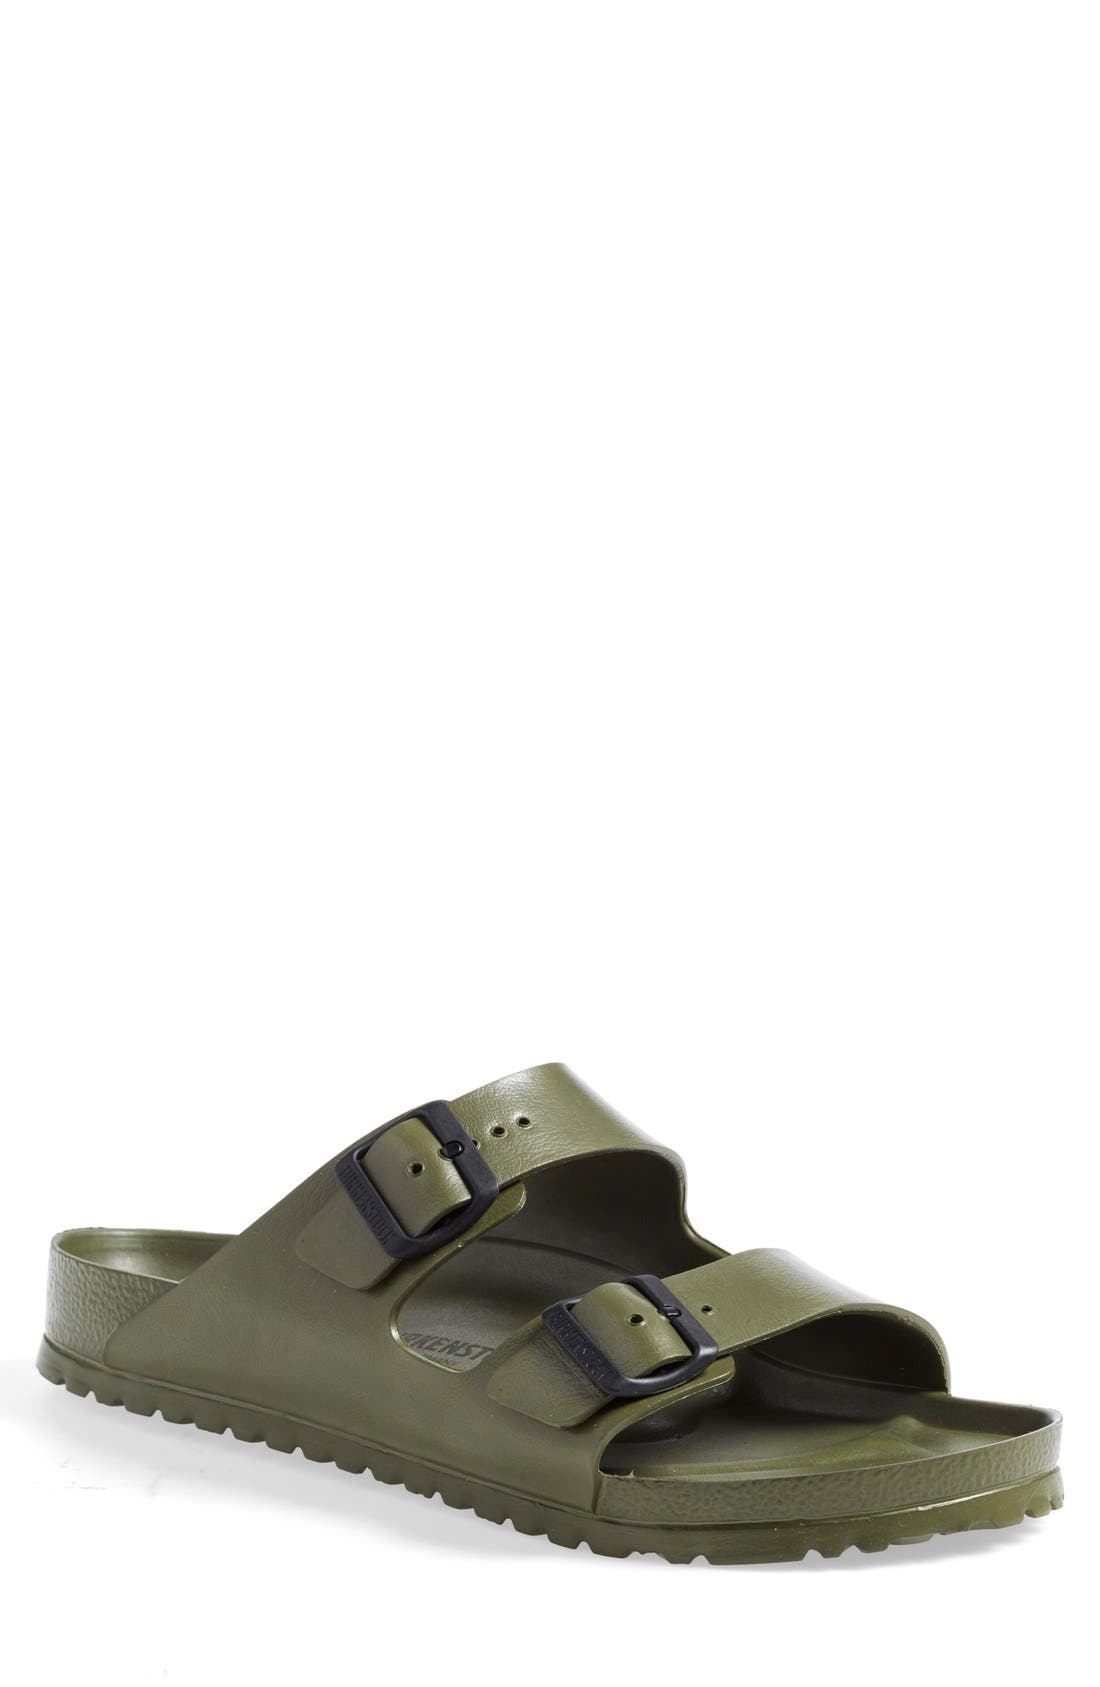 Main Image - Birkenstock 'Essentials - Arizona EVA' Waterproof Slide Sandal (Men)